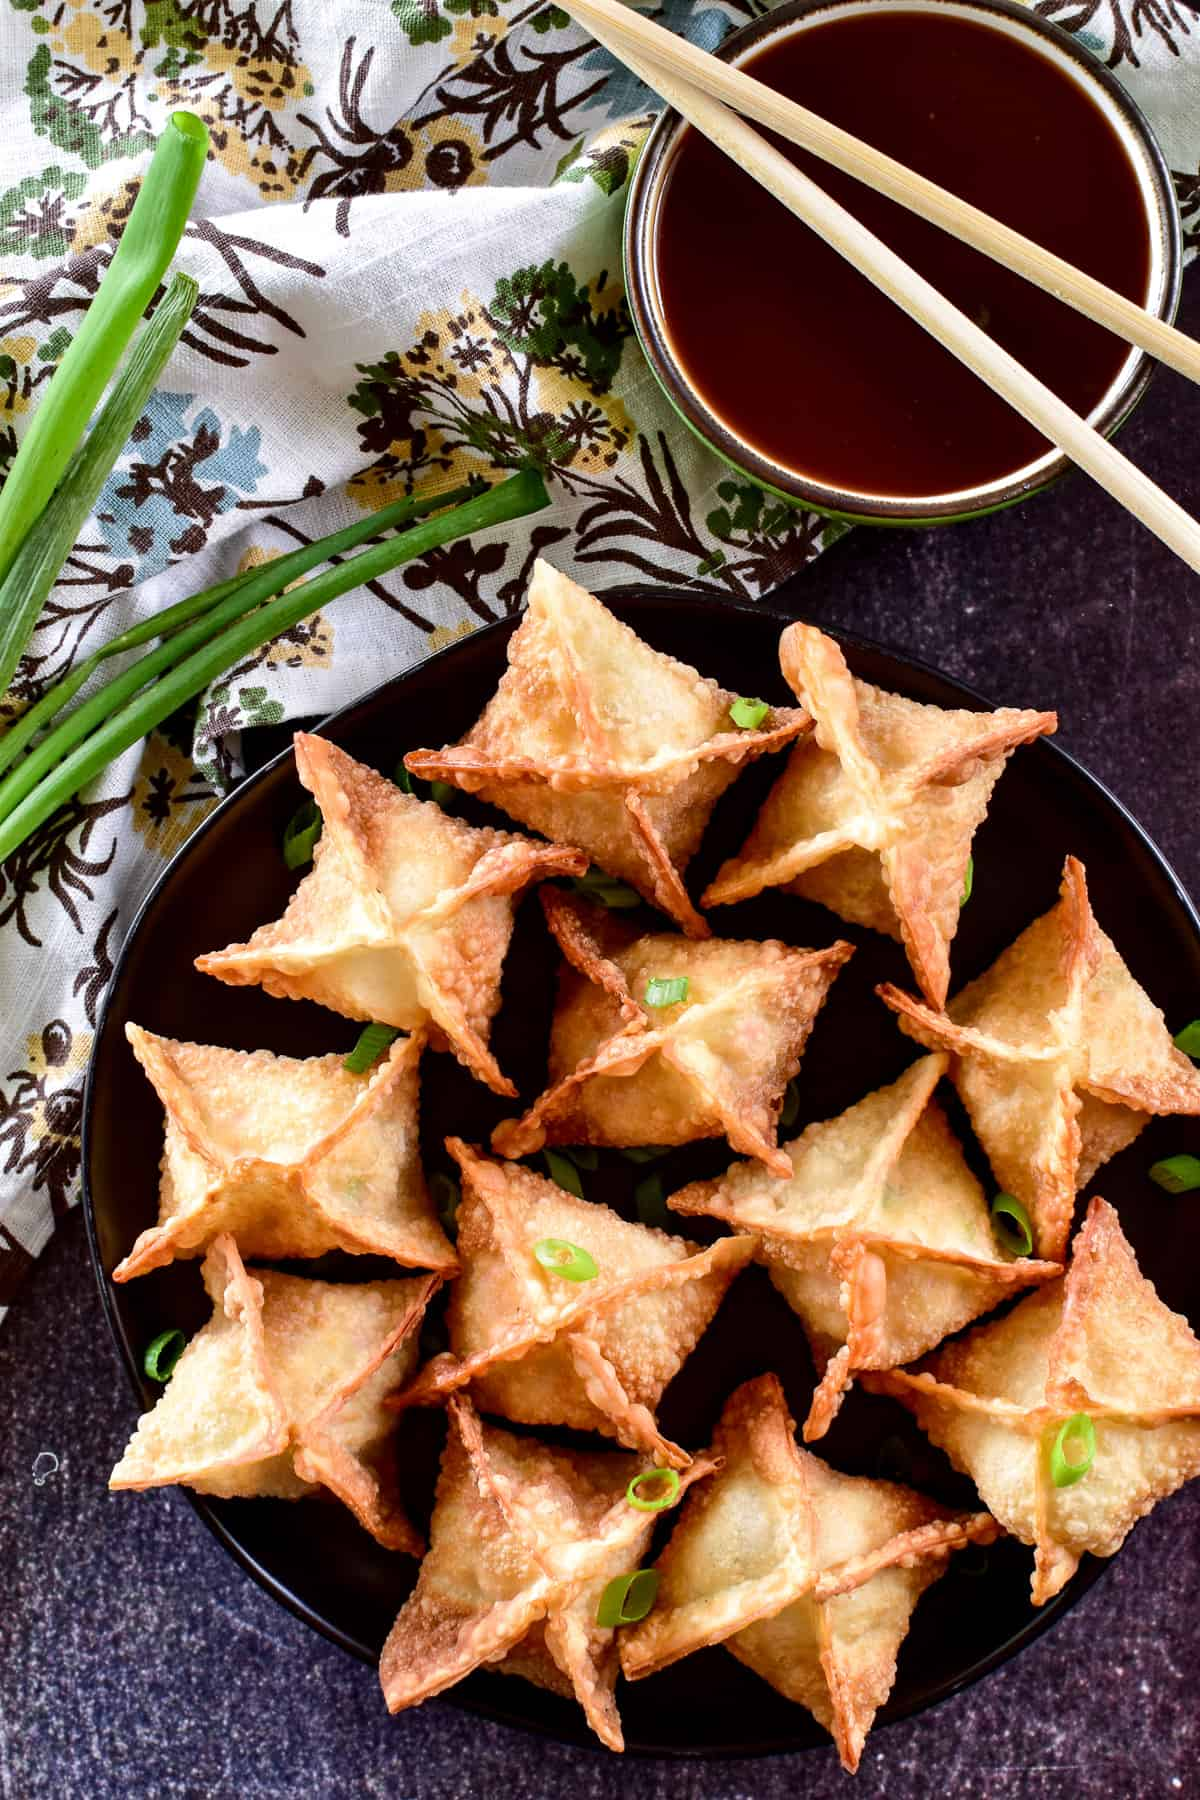 Overhead image of Crab Rangoon with floral towel